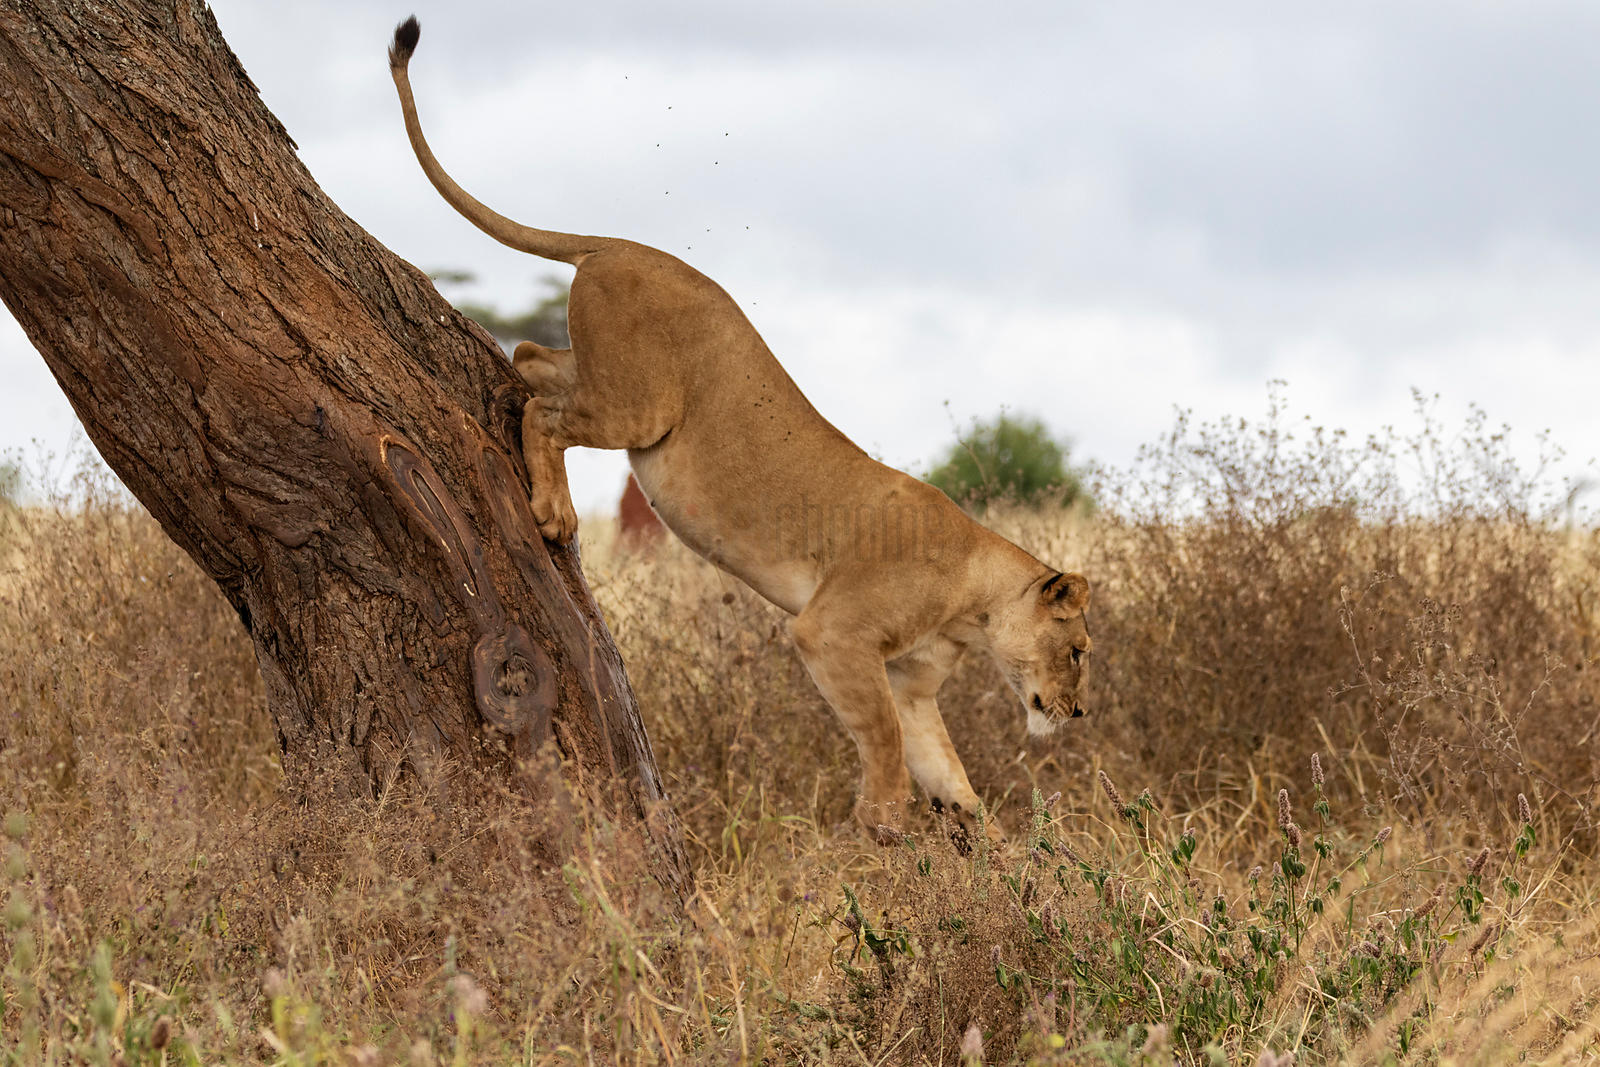 Lion Jumping out of an Acacia Tree